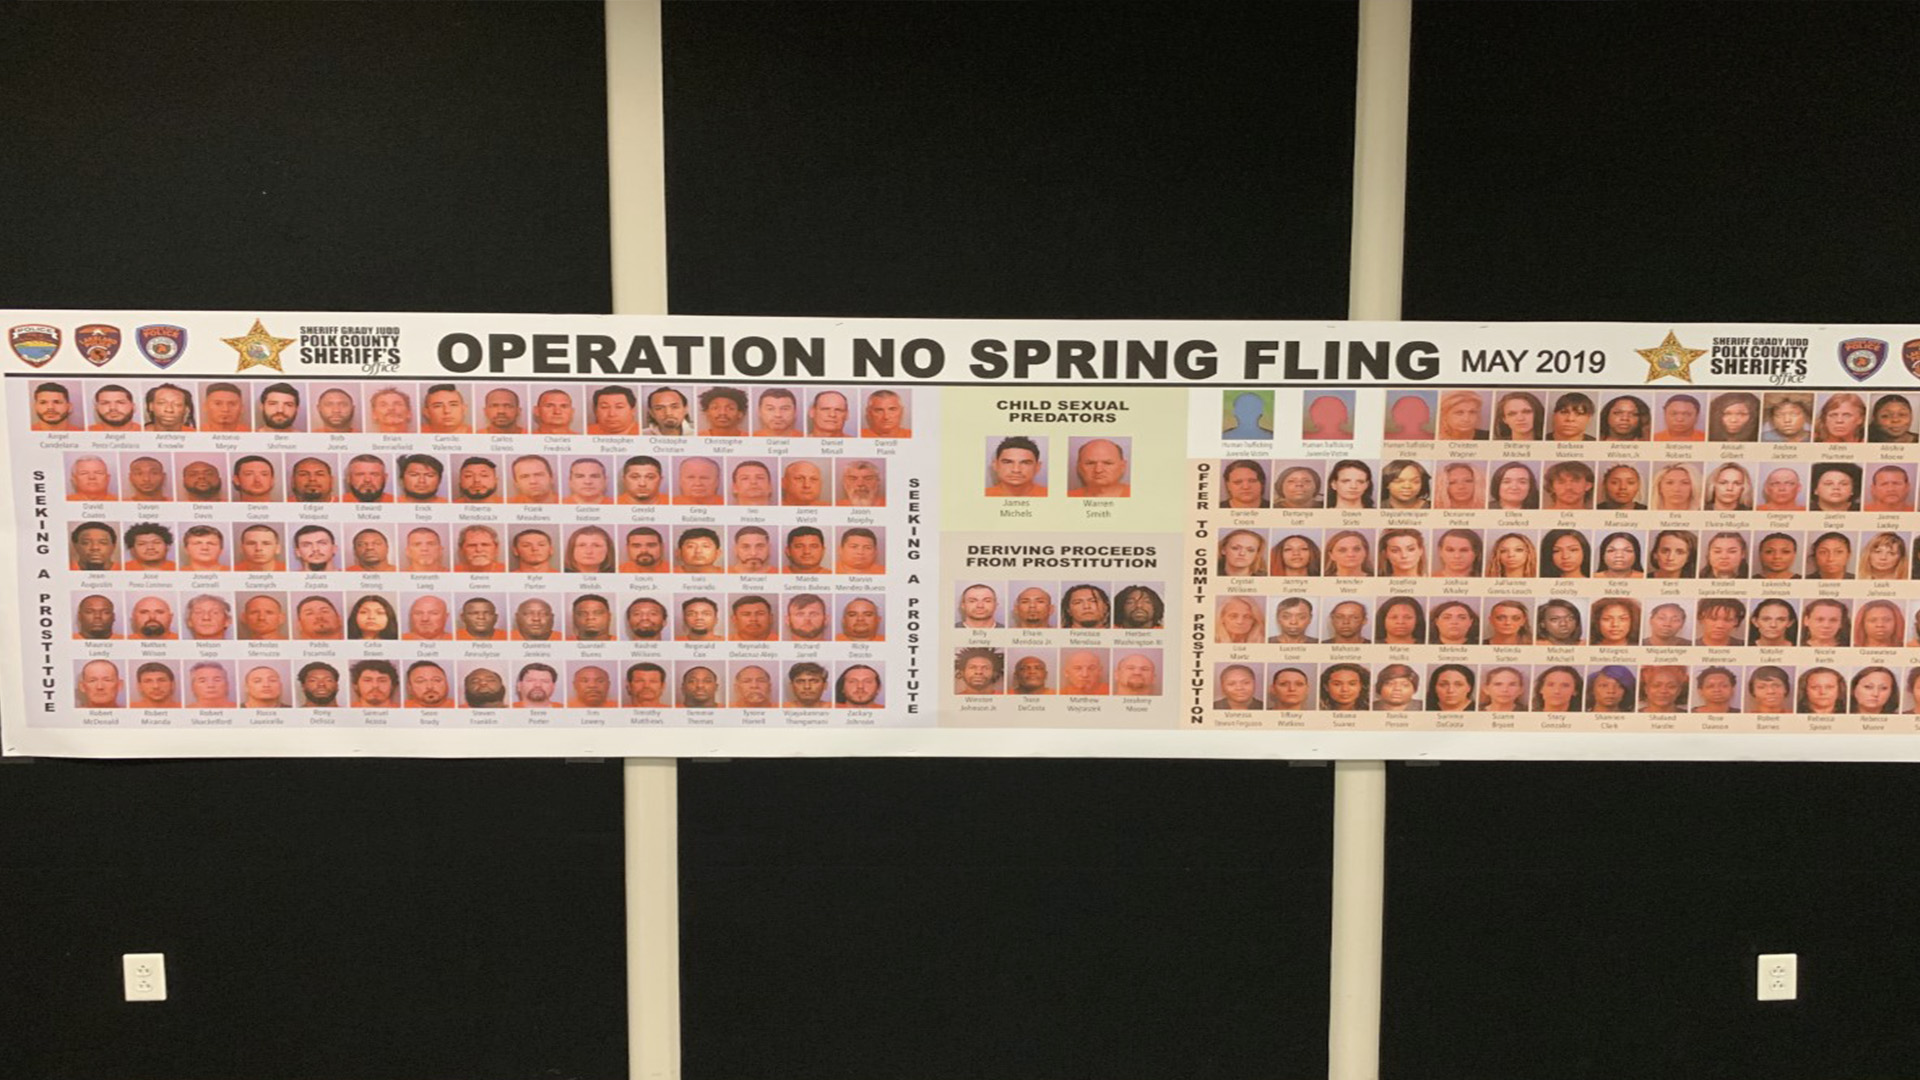 154 arrested in undercover sex sting in Polk County